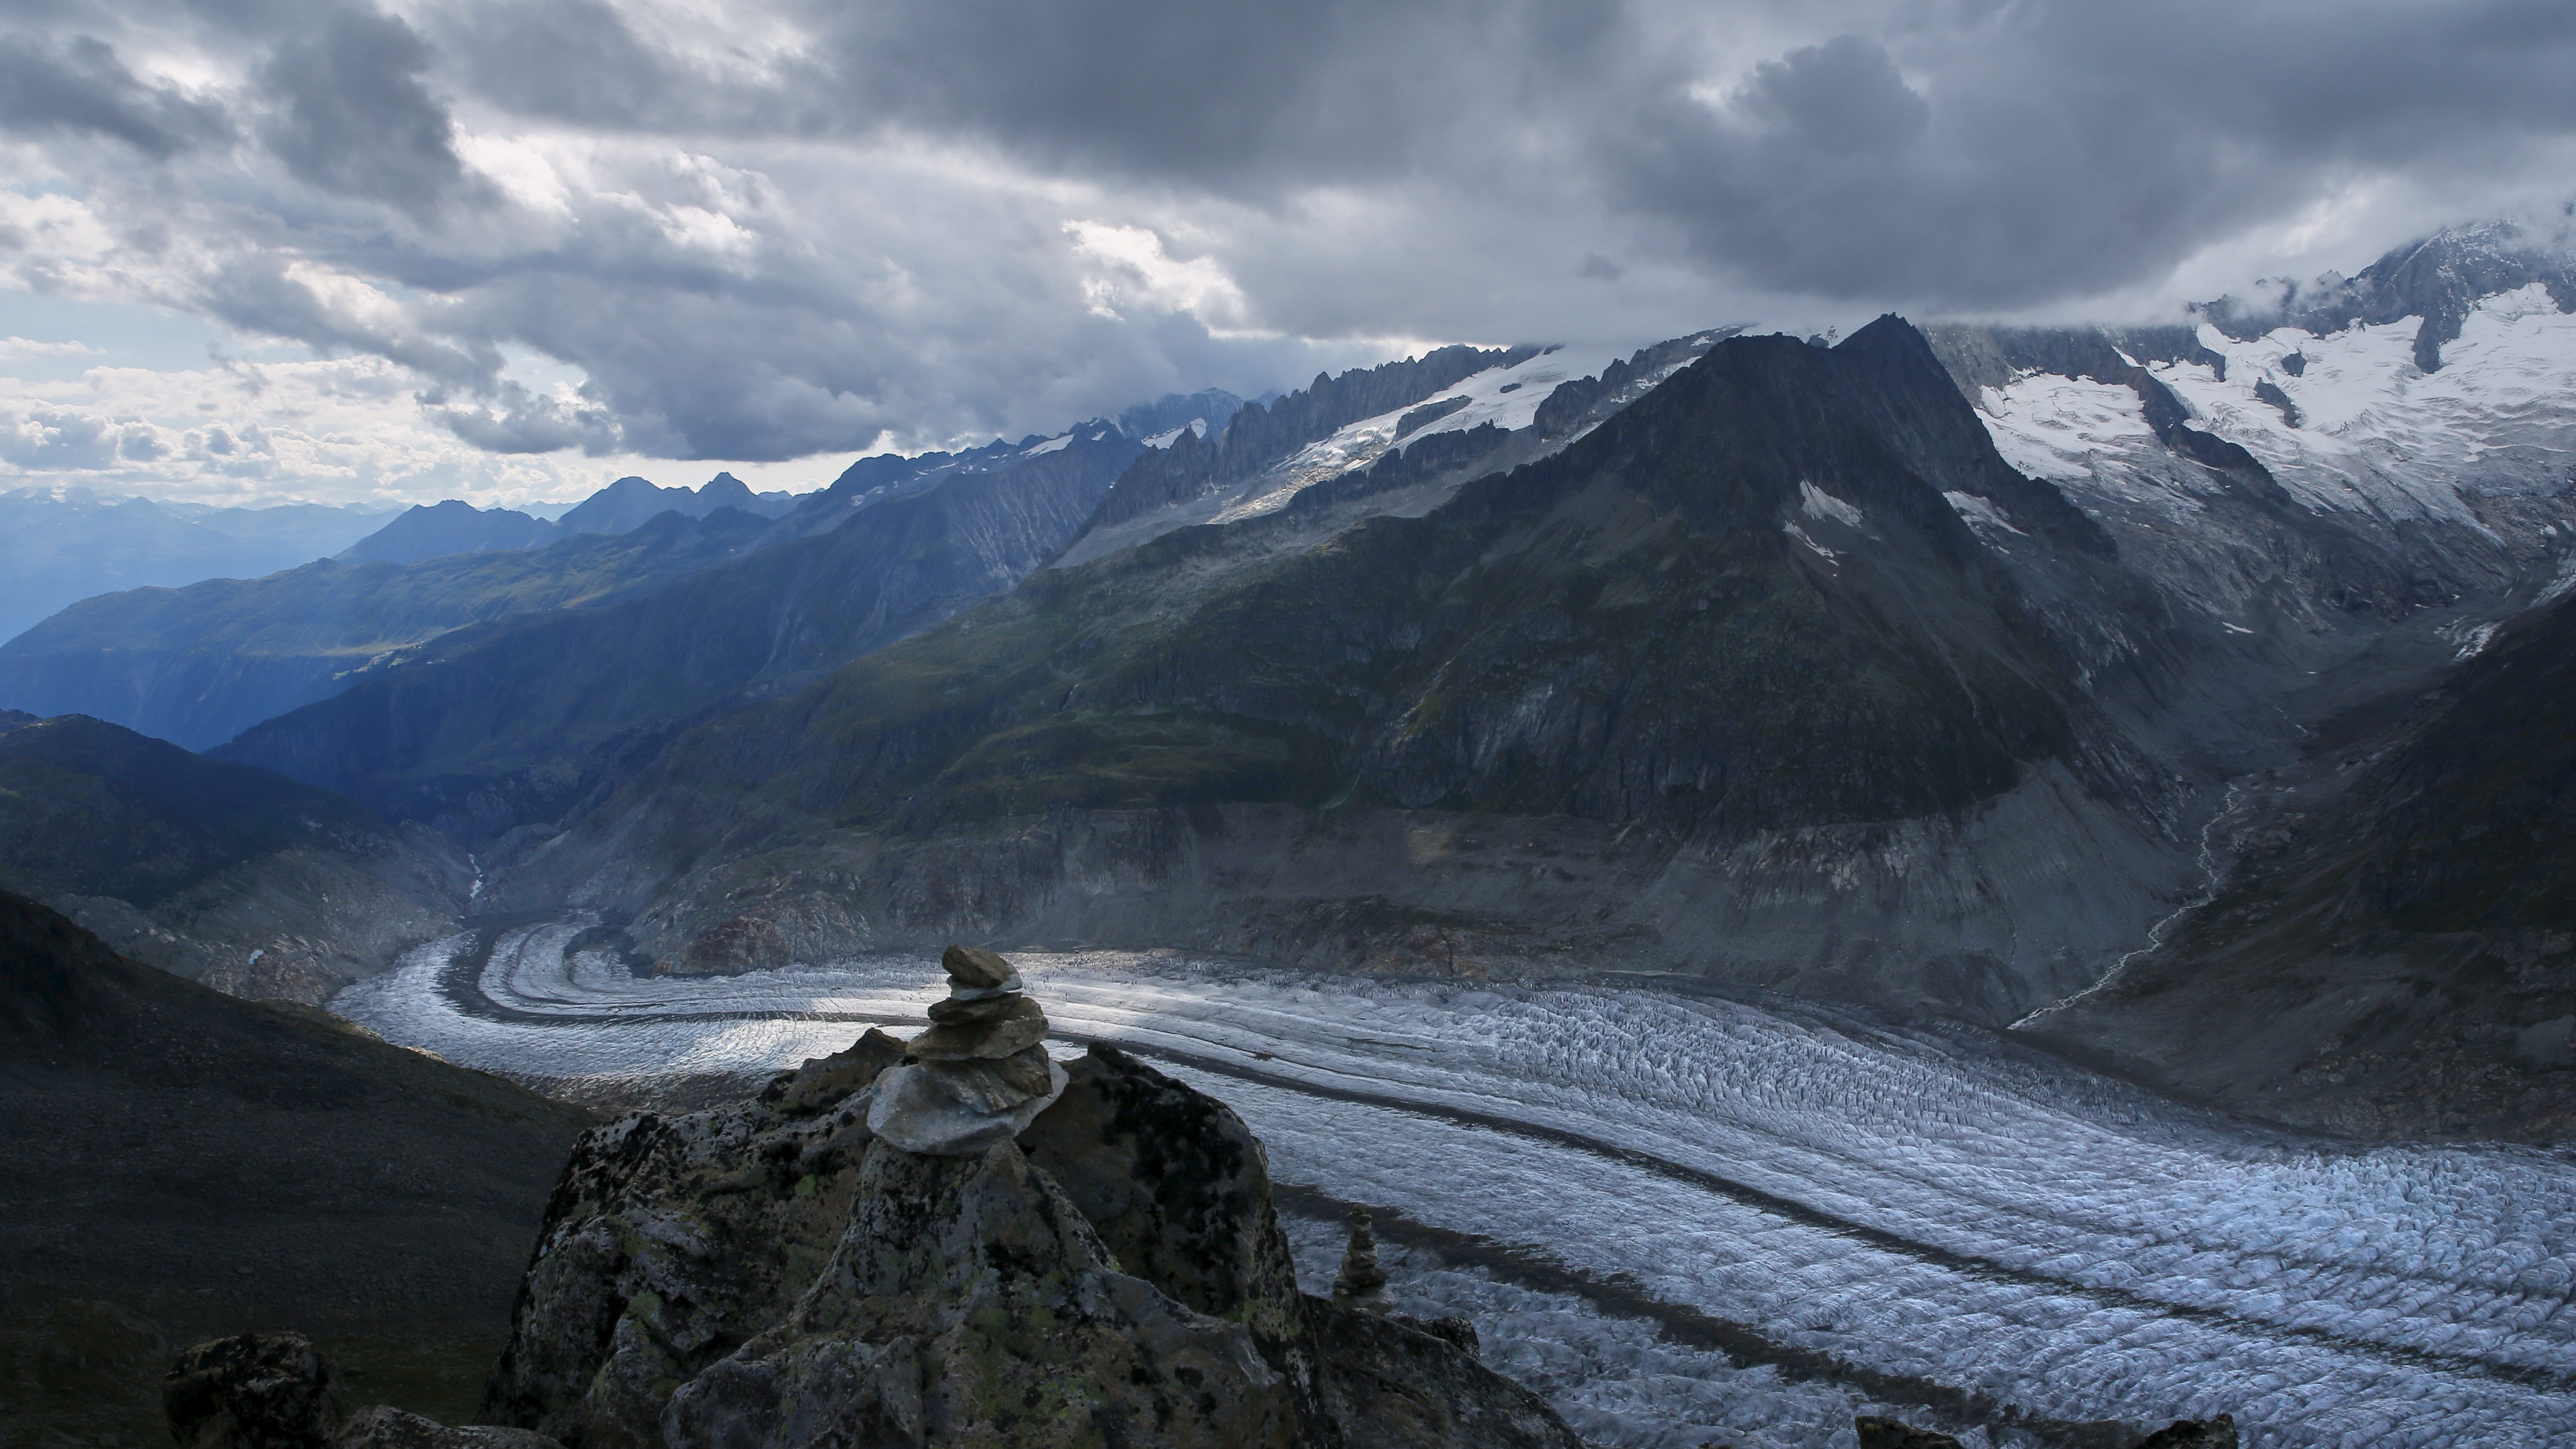 One of Europe's biggest glaciers, the Great Aletsch coils 23 km (14 miles) through the Swiss Alps - and yet this mighty river of ice could almost vanish in the lifetimes of people born today because of climate change